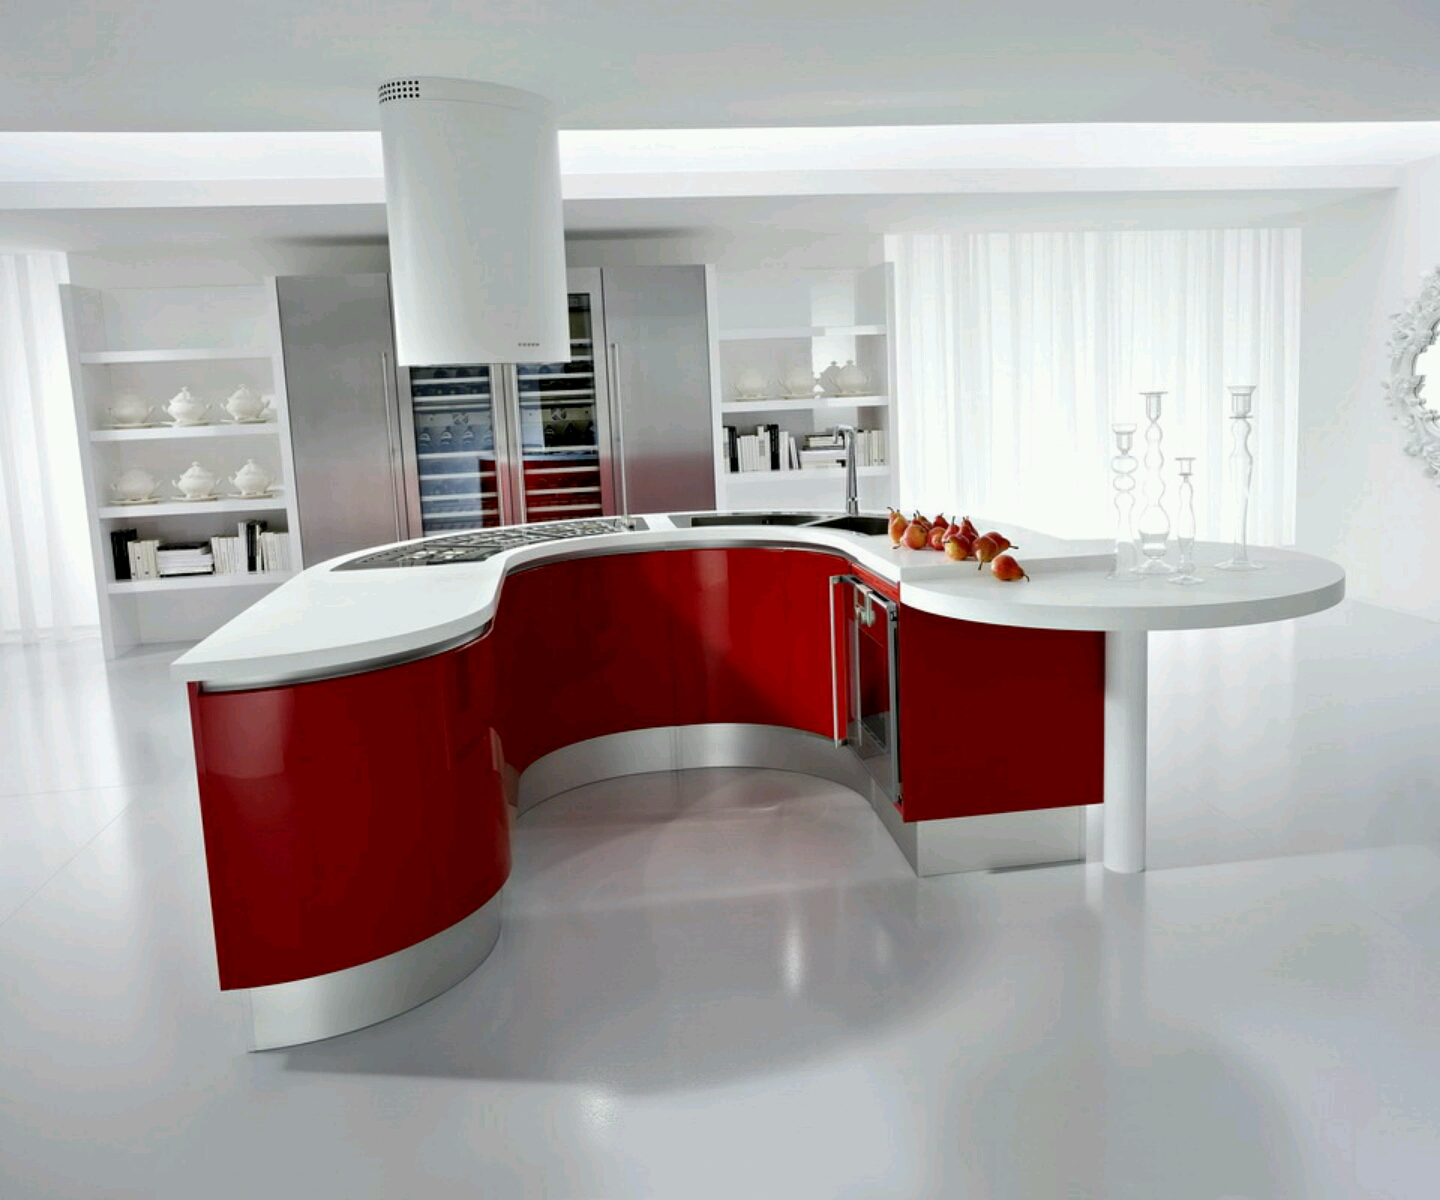 Modern kitchen cabinets designs ideas furniture gallery for Kitchen cabinet design